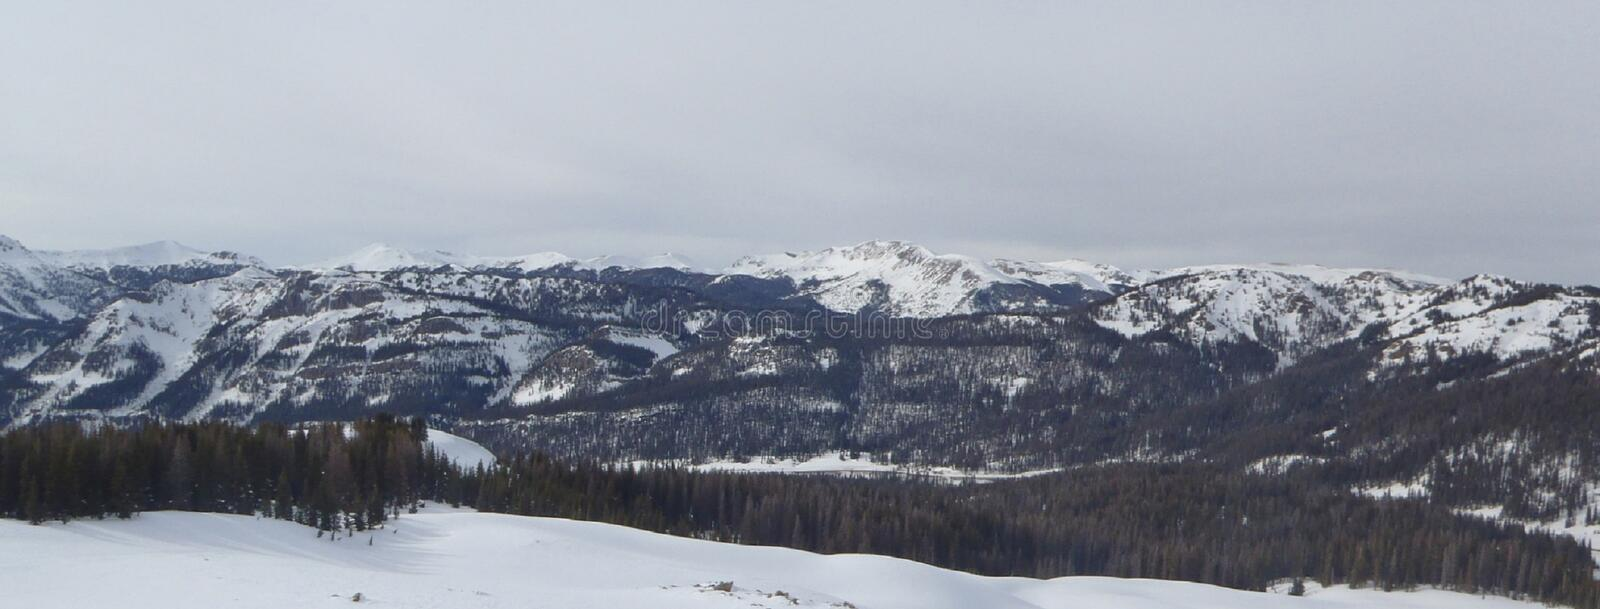 View from Colorado Mountain Top in Winter stock images